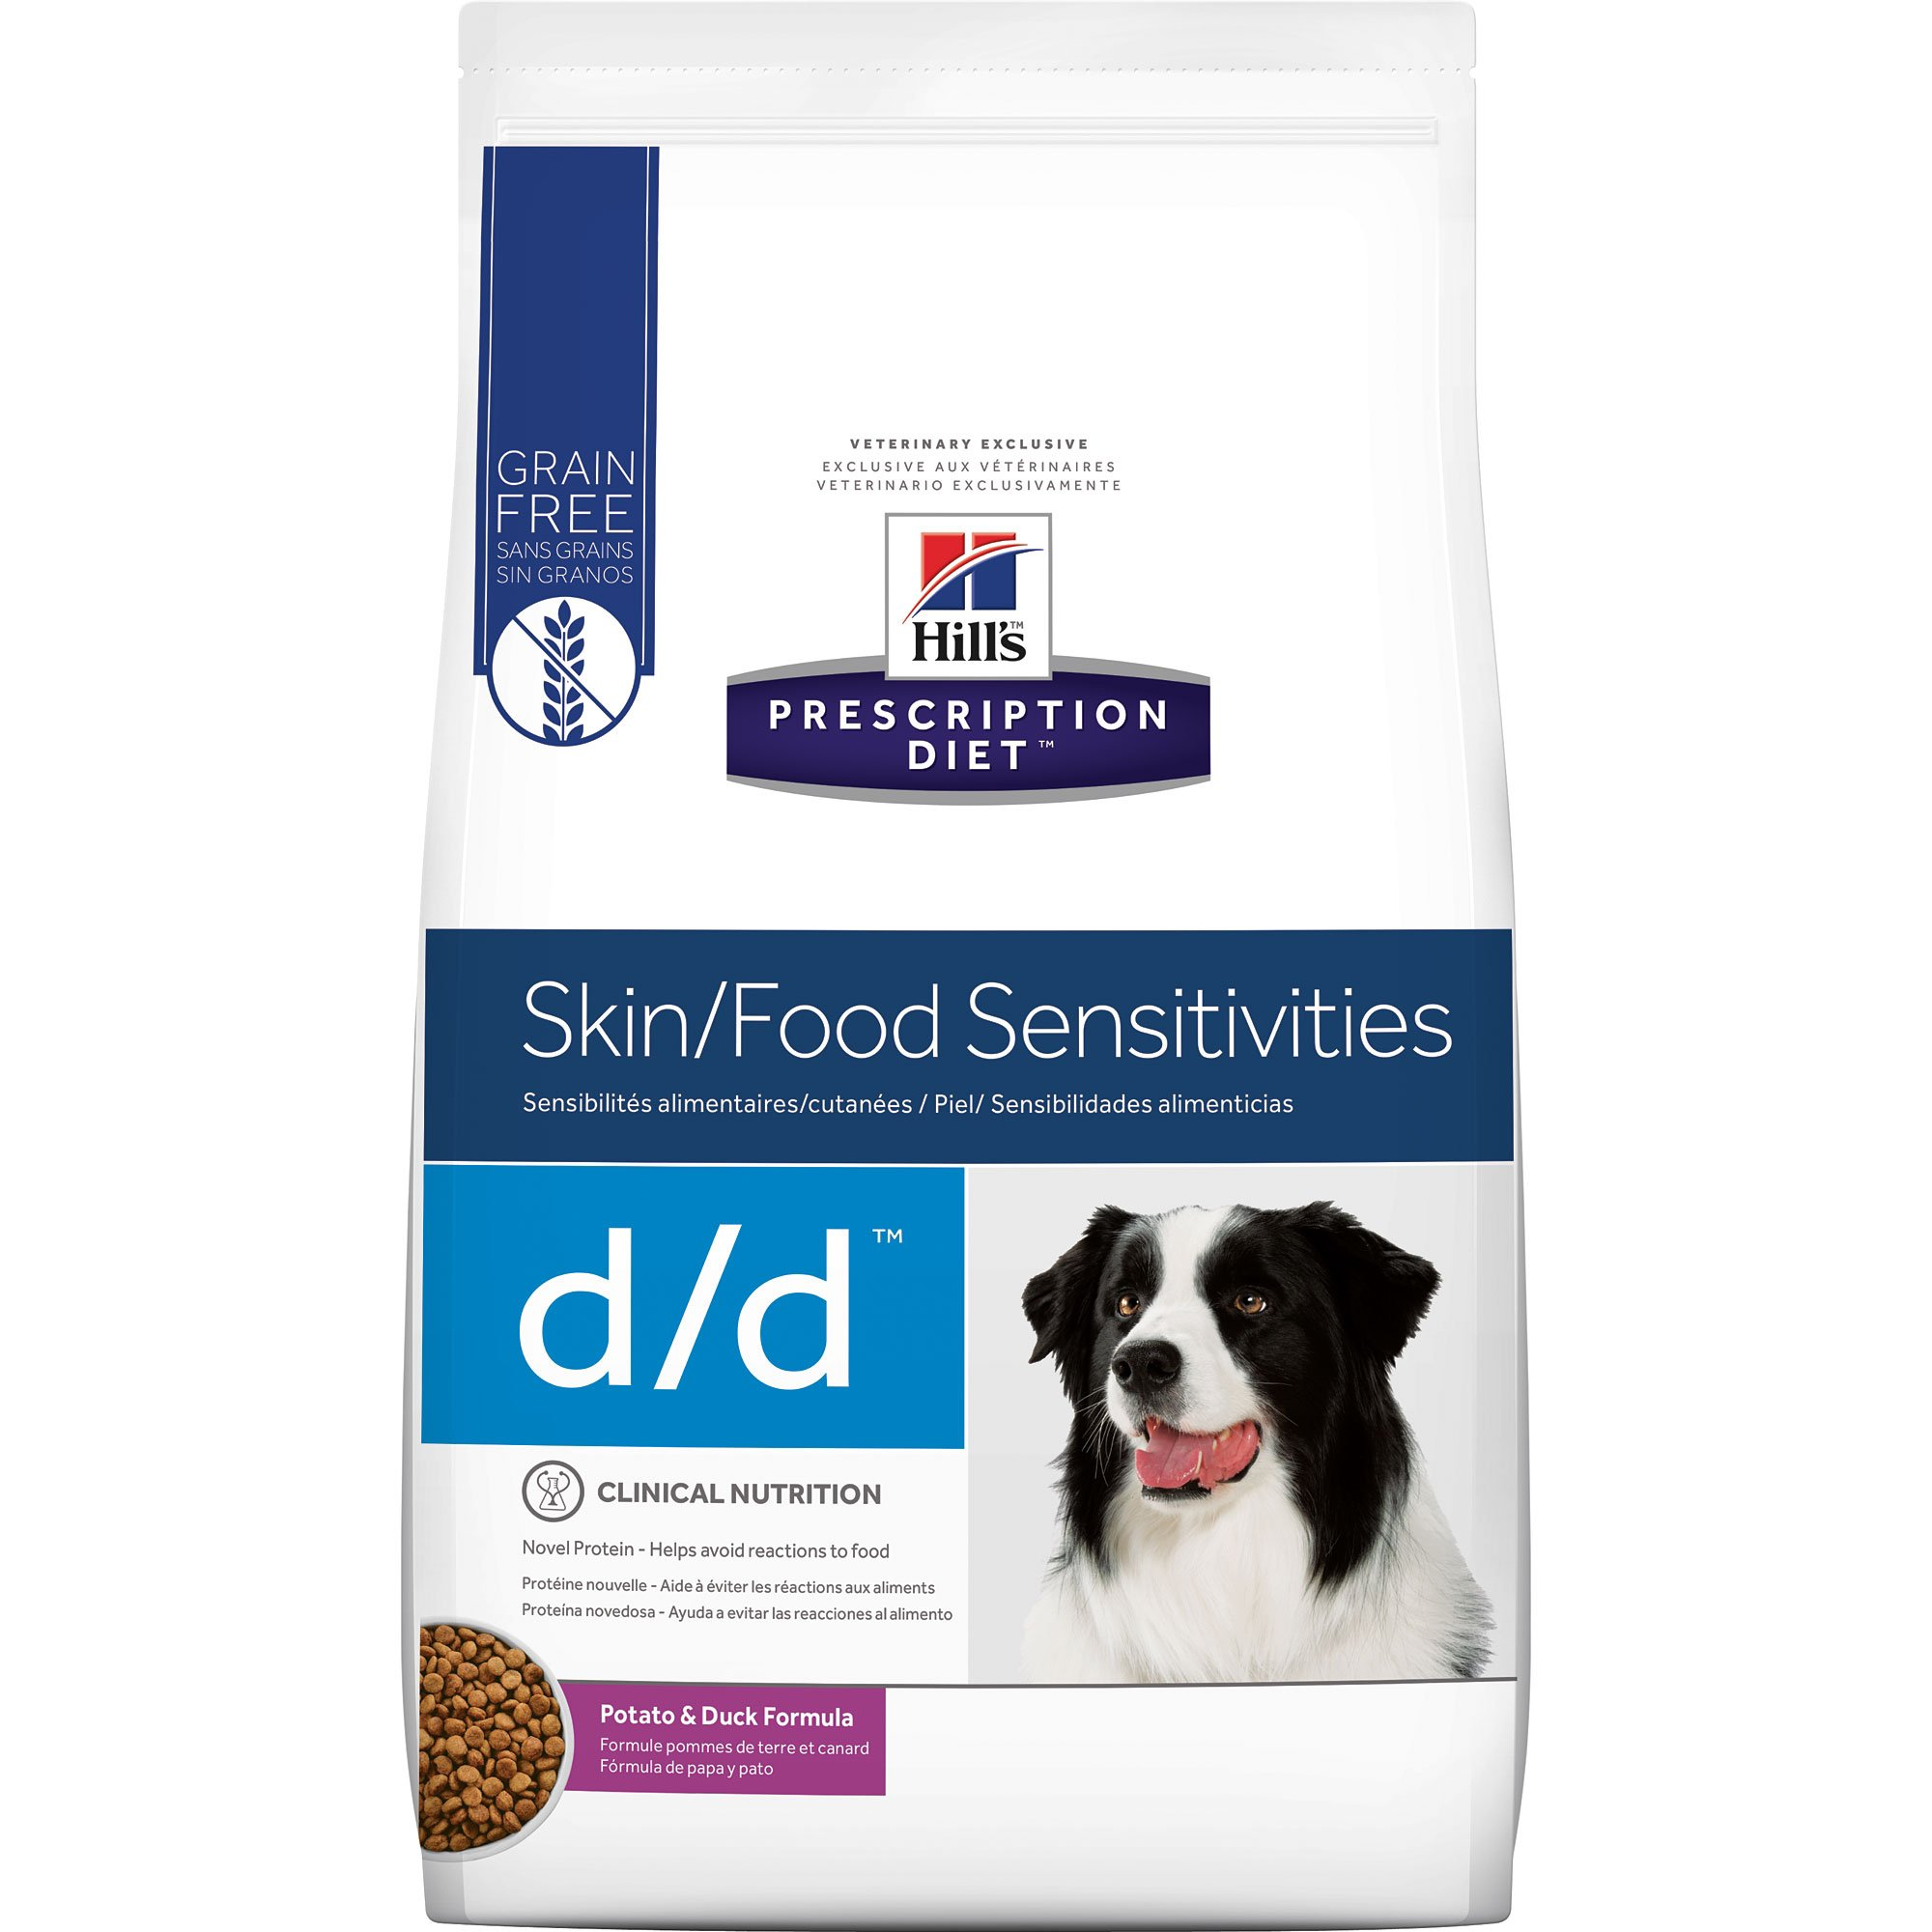 Hill's Prescription Diet d/d Skin/Food Sensitivities Grain Free Potato & Duck Flavor Dry Dog Food, 25 lbs., bag